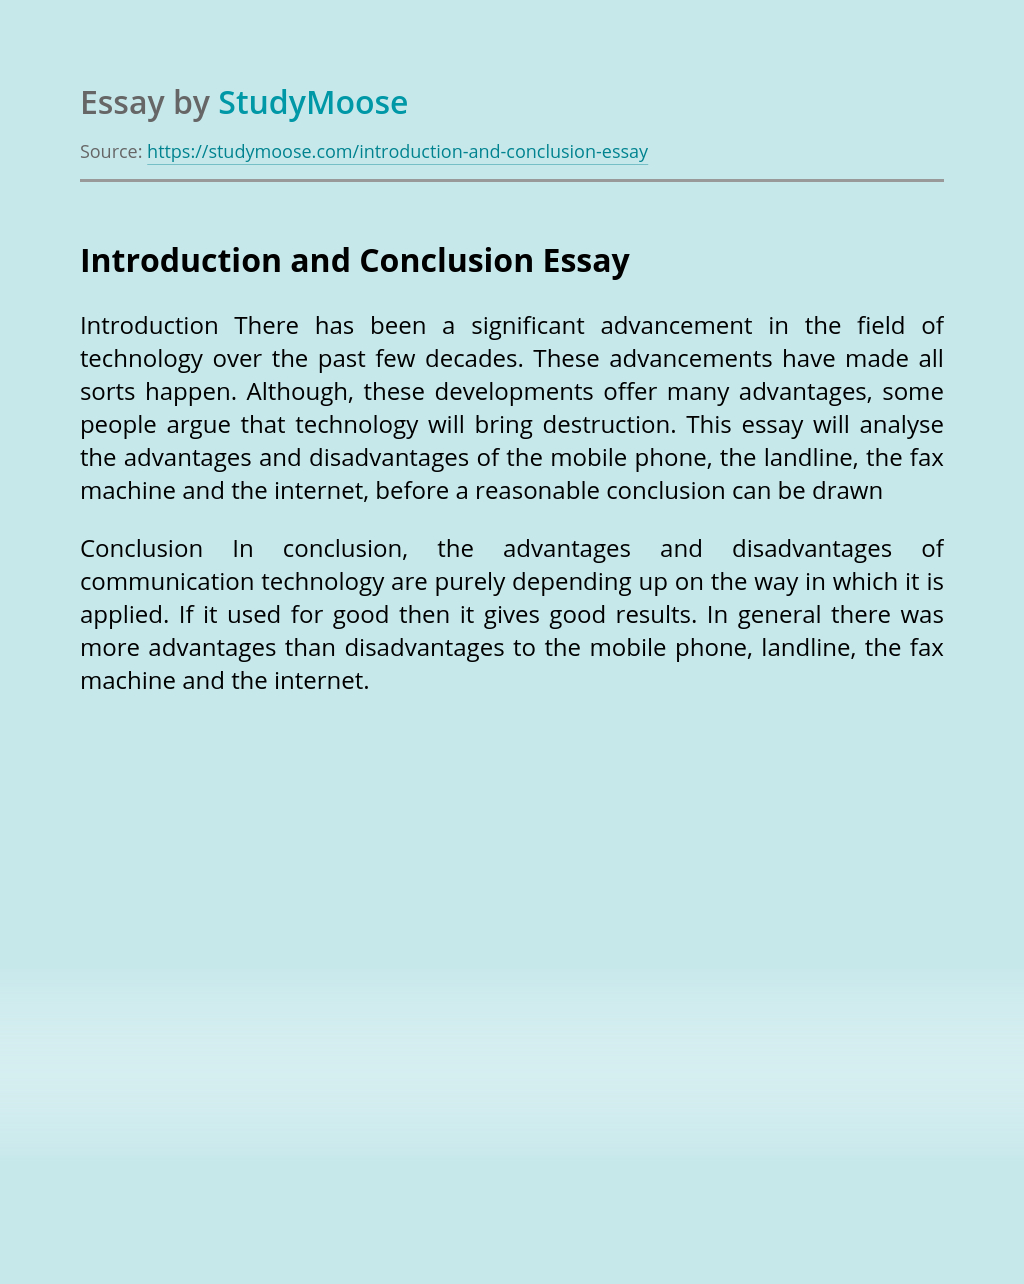 Introduction and Conclusion